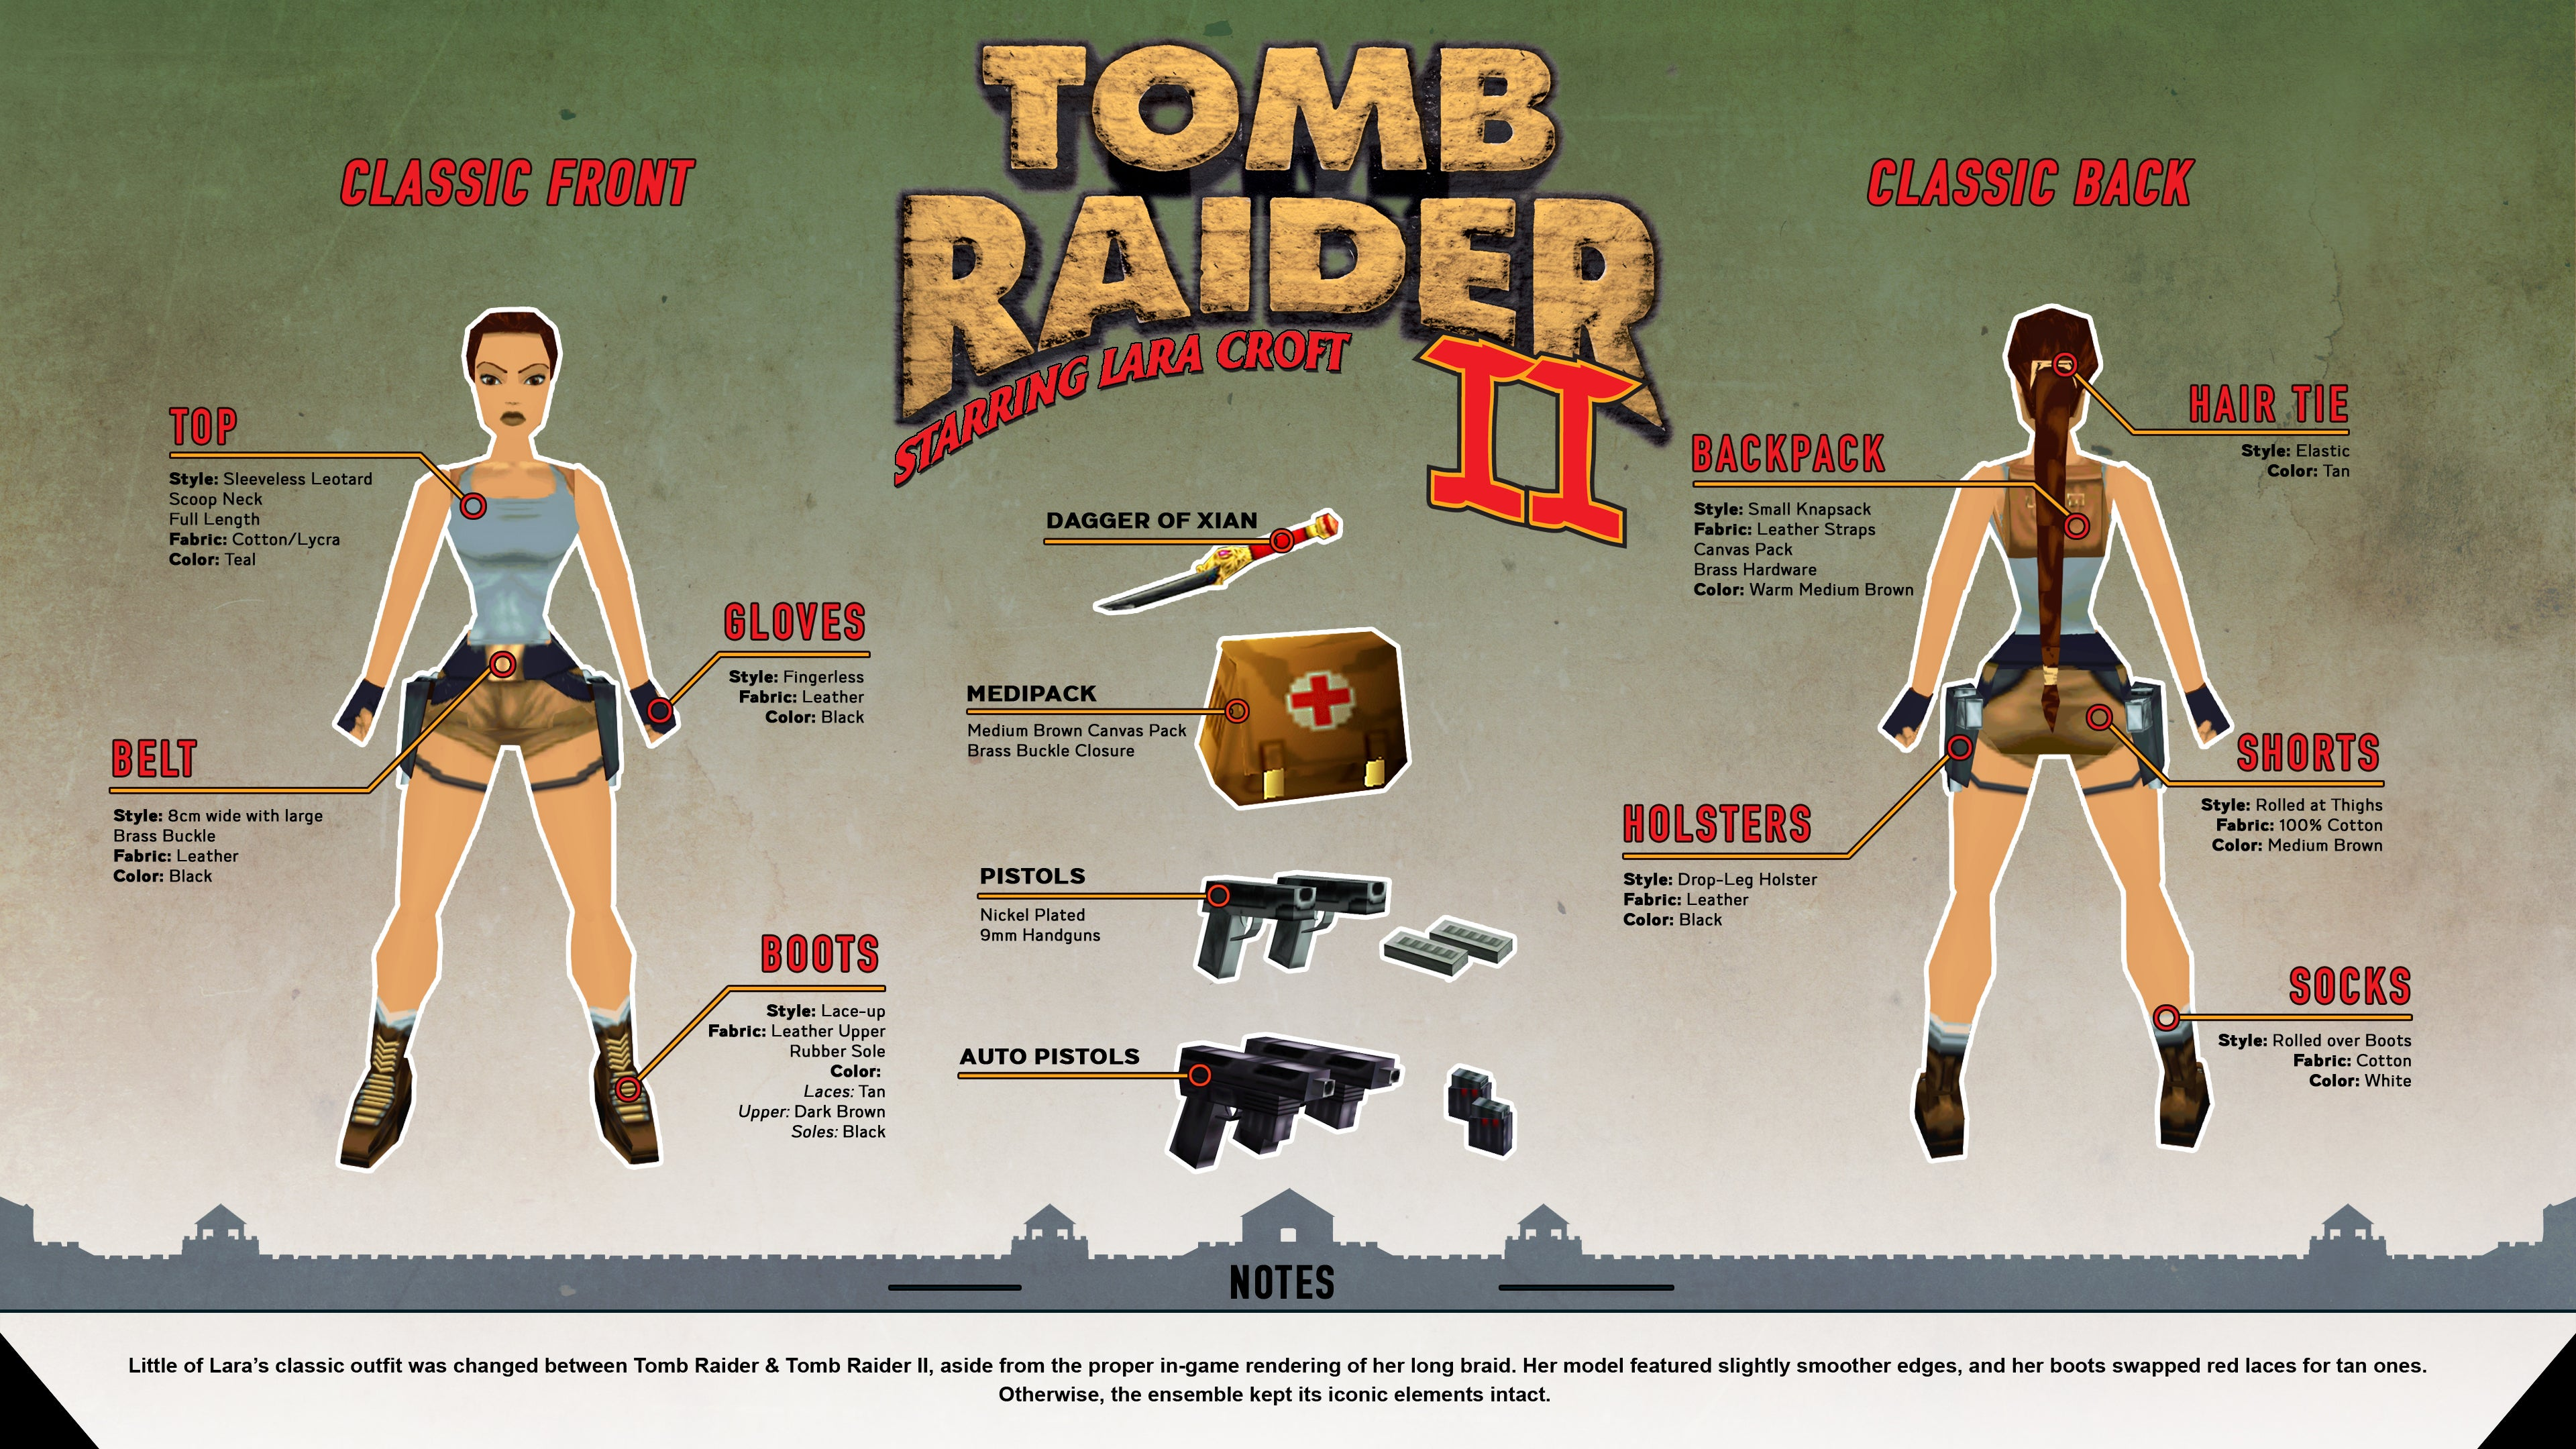 A graphic showing a cosplay guide for Lara Croft's classic outfit in Tomb Raider II. The TRII logo is at the top and the bottom has a great wall element spanning the bottom. The front and back of her outfit are featured with notes, as well as different accessories like her pistols and a medipack. Written notes are on the bottom of the graphic.